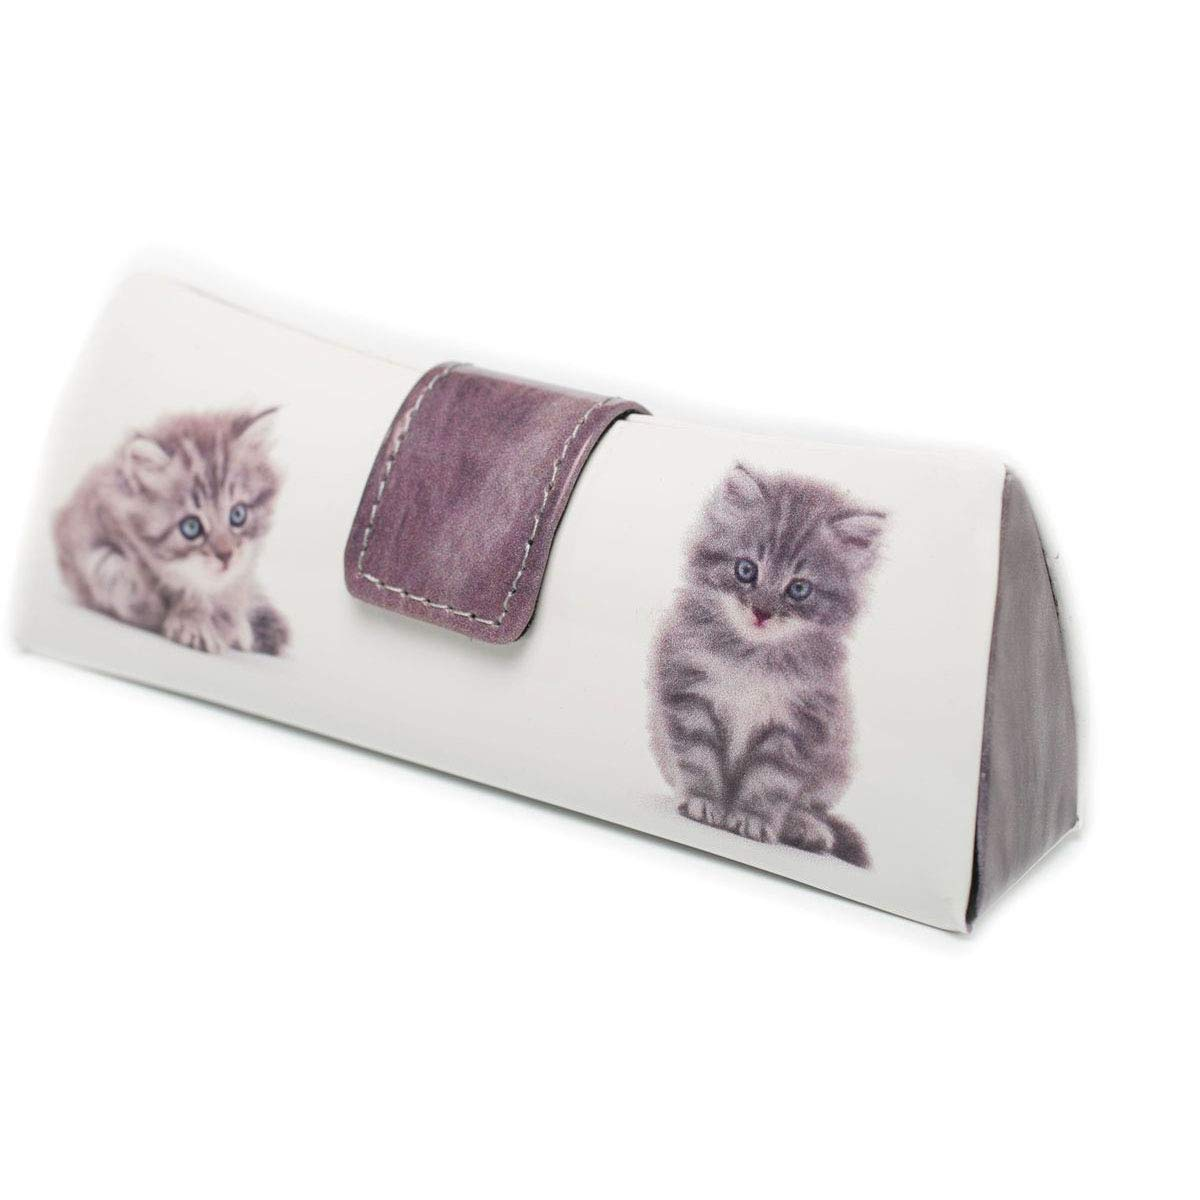 Handmade Russian Glasses case white with a color print, on a solid basis, covered with artificial leather by RuPost